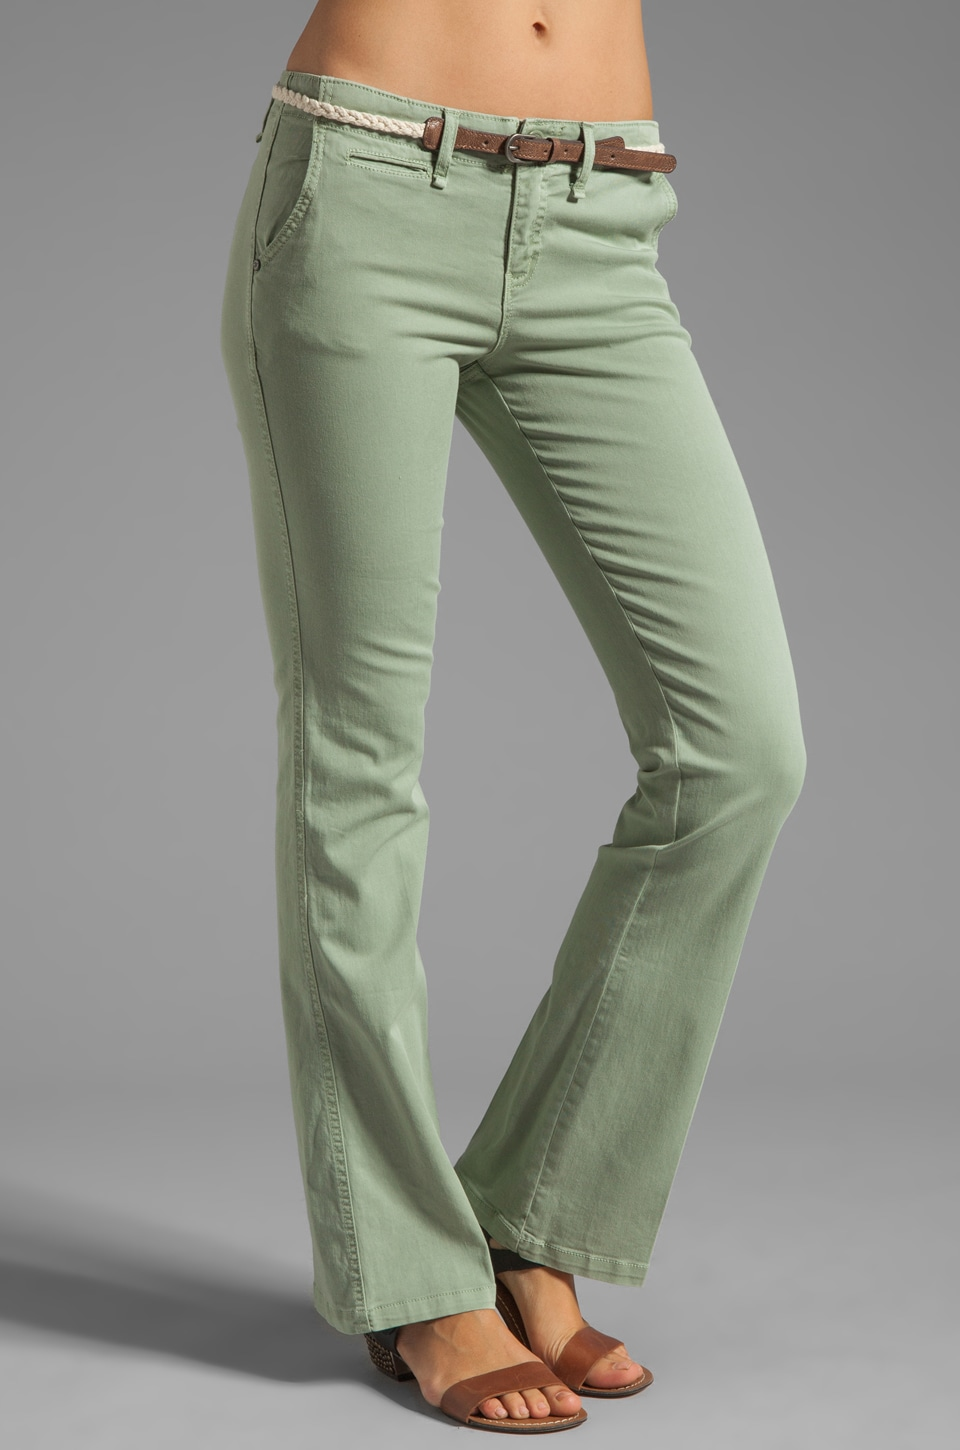 Sanctuary Liberty Chino Trouser with Belt in Weed